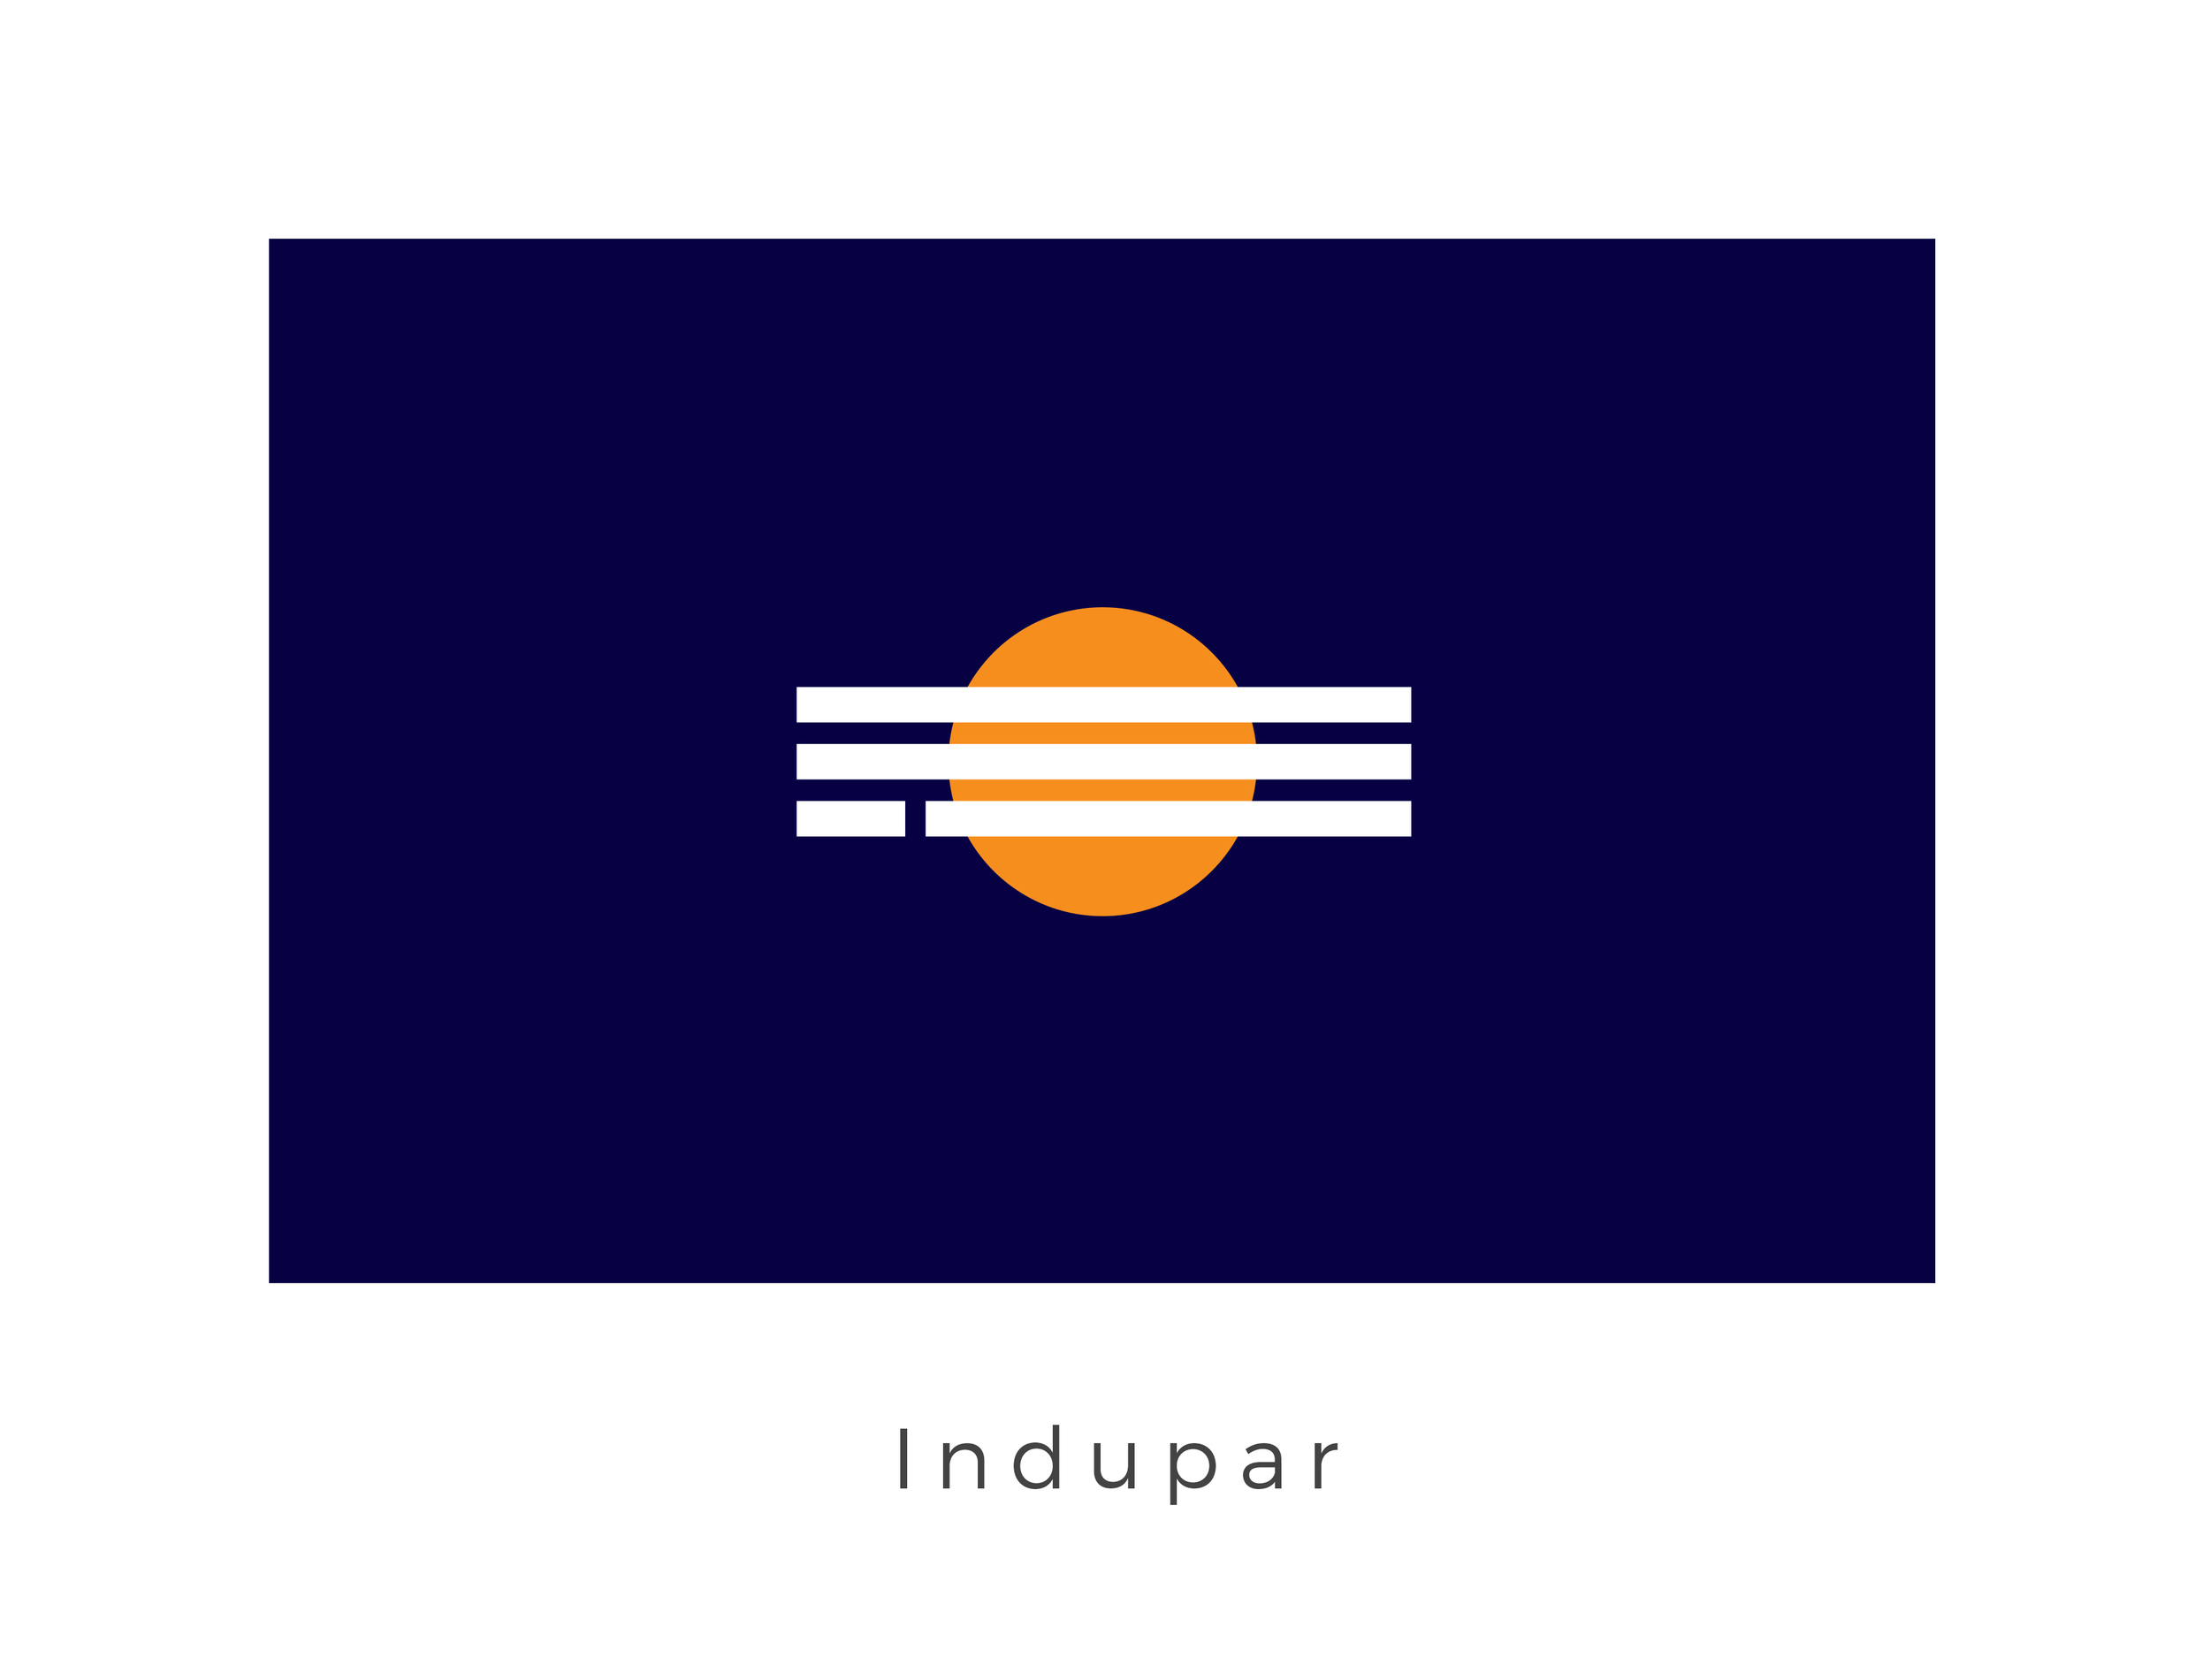 Indupar  was a Mid Rim world in Ado sector. It was the capital of the Induparan Crown Worlds. It was ruled by the Induparan Monarchy and House Indupar, including King Dahon Indupar during the New Order. The deep blue, orange circle and 3 bands were the modern symbol of the ancient Induparan House. Variations of the this family crest can be seen on other planets such as Ec Pand.